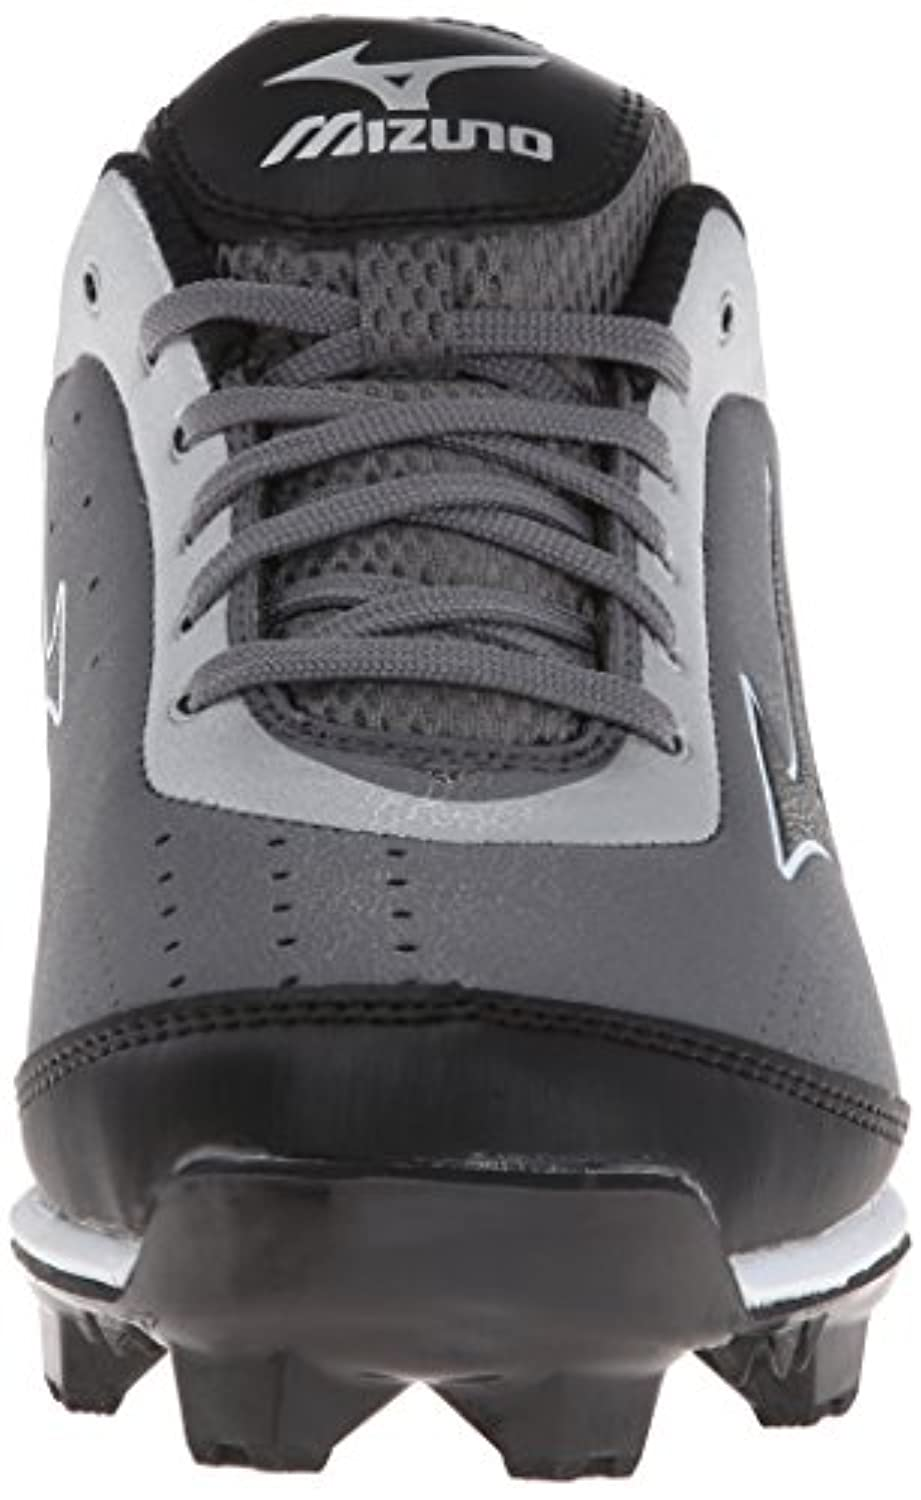 Mizuno Usa Mens 9 Spike Blaze Elite 5 GY BK Baseball Shoe, Grey/Black, 10.5 D US